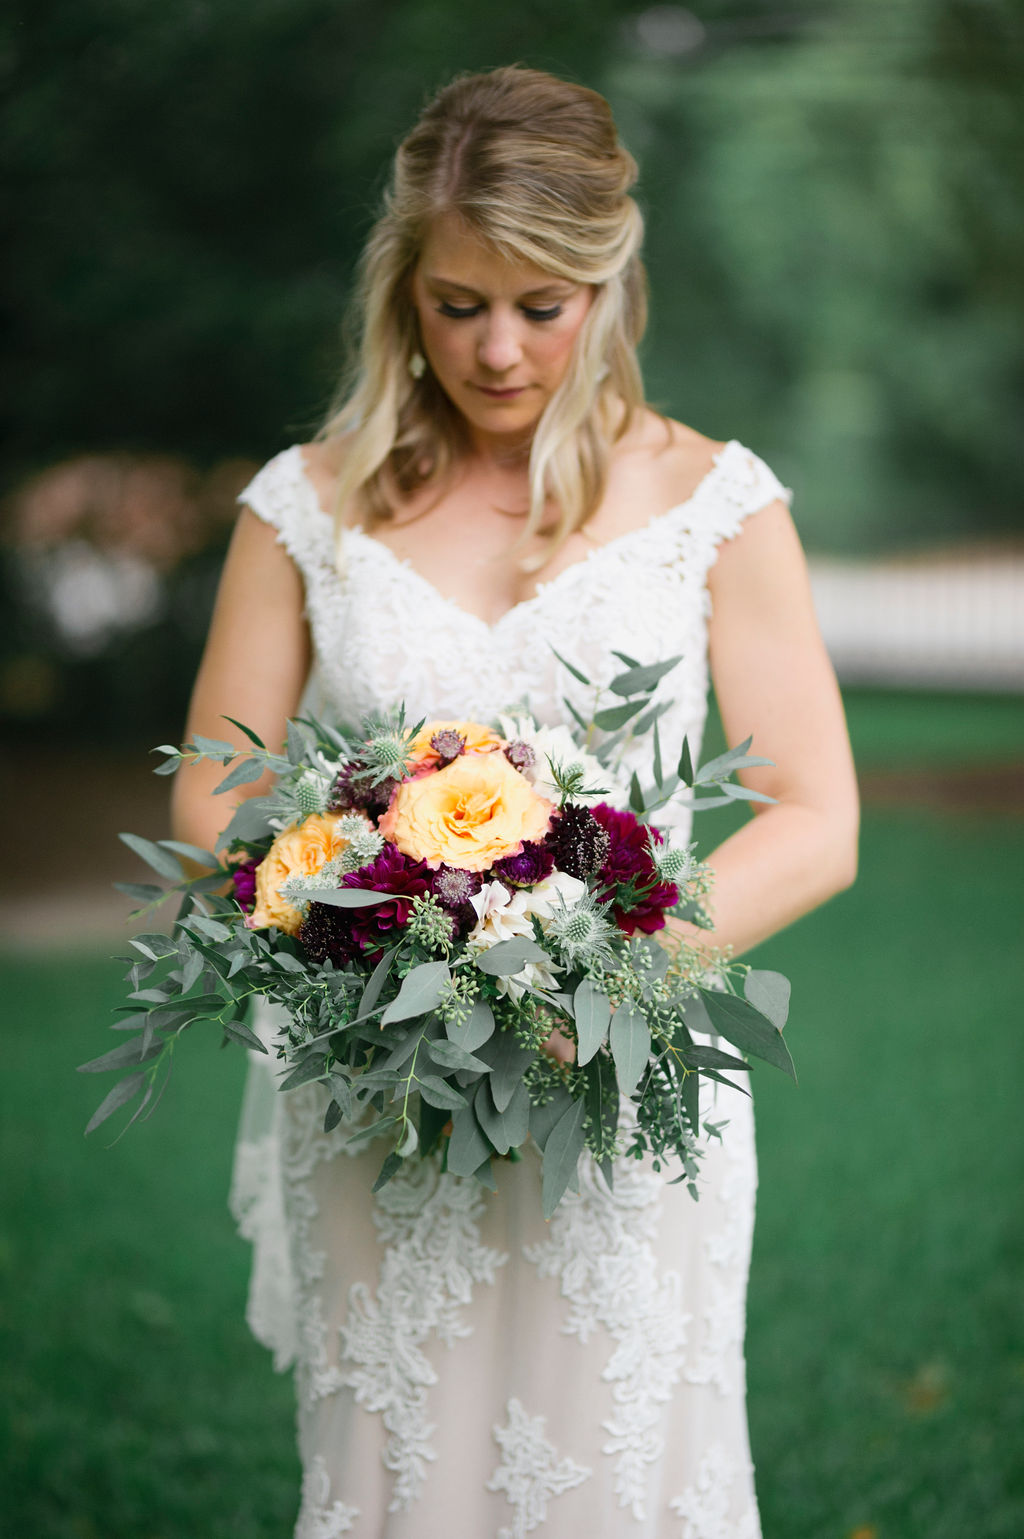 Featured Floral: Free Spirit Roses, Burgundy & Cafe Au Lait Dahlias, Thistle, Eucalyptus, scabiosa, Astrantia - Jamie + Adam, Private Home, Laura Fulmer Photography